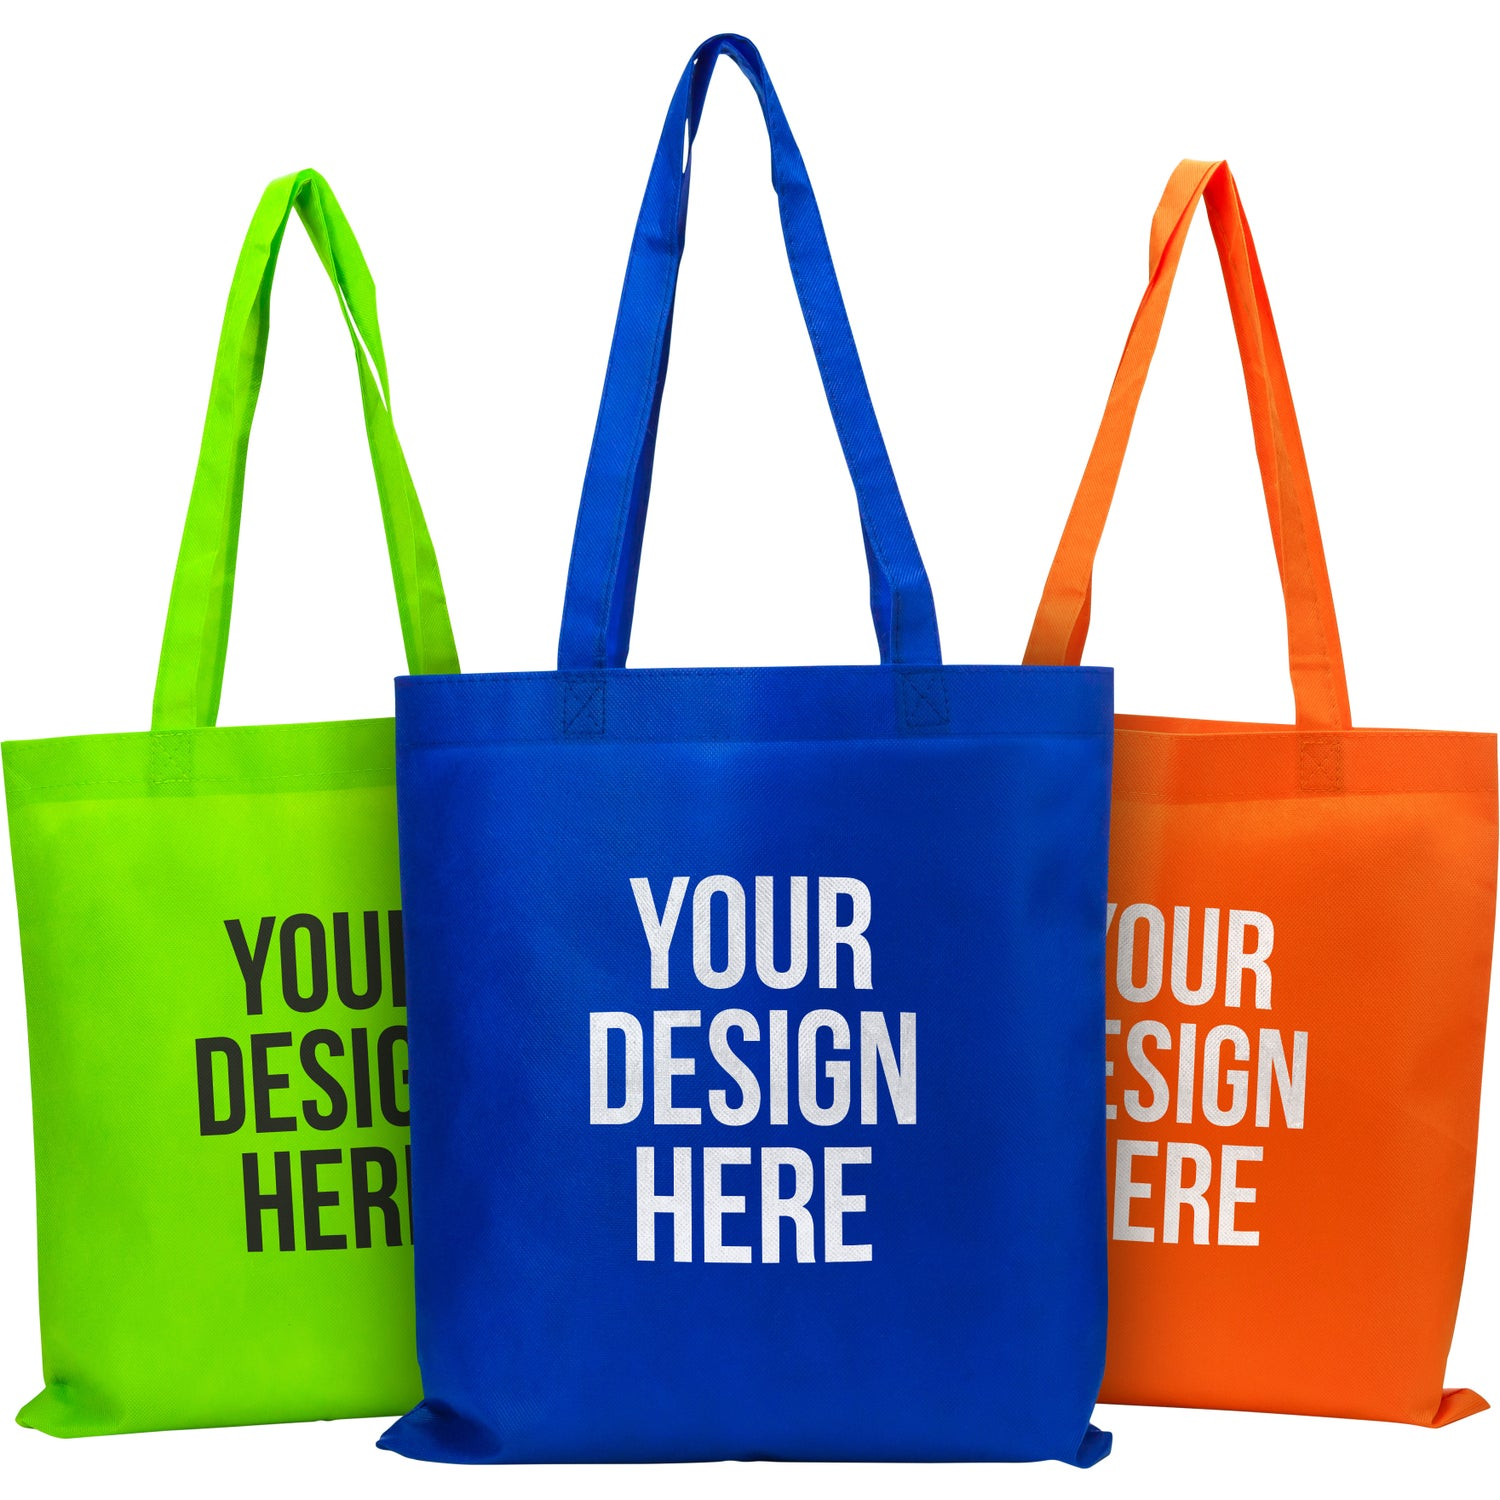 8f2b625f95a1 You've Got This in the Bag - Custom Tote Bags for Your Event